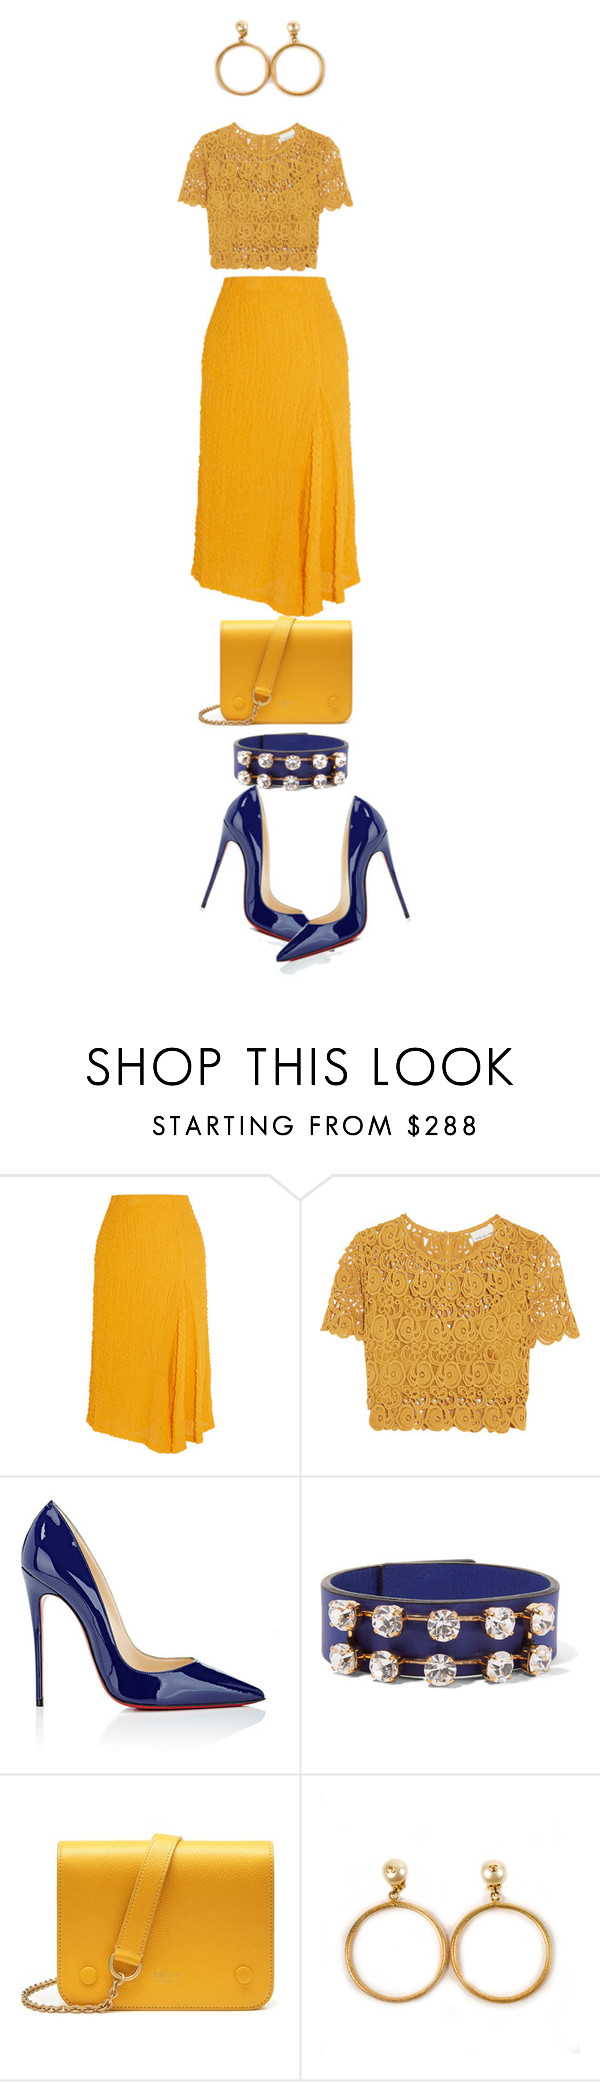 """Victoria"" by diannecollier ❤ liked on Polyvore featuring Victoria Beckham, Miguelina, Christian Louboutin, Marni, Mulberry, Chanel and polyvoreeditorial"